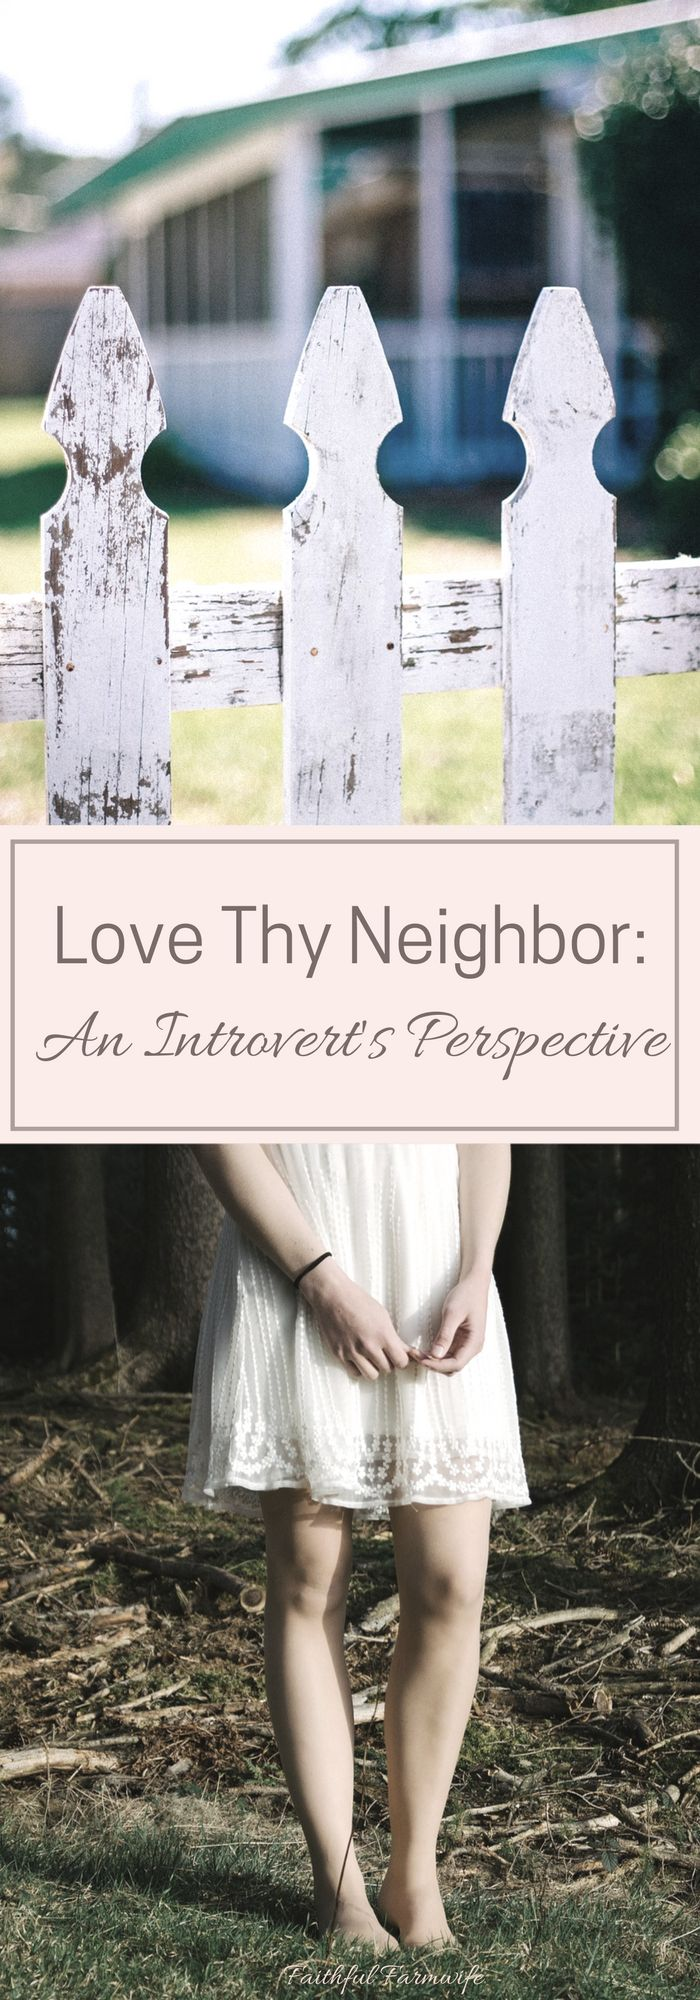 Who is my neighbor? Is it bad for a Christian to be an introvert? How can I serve my neighbor as an introvert? What is holding you back?